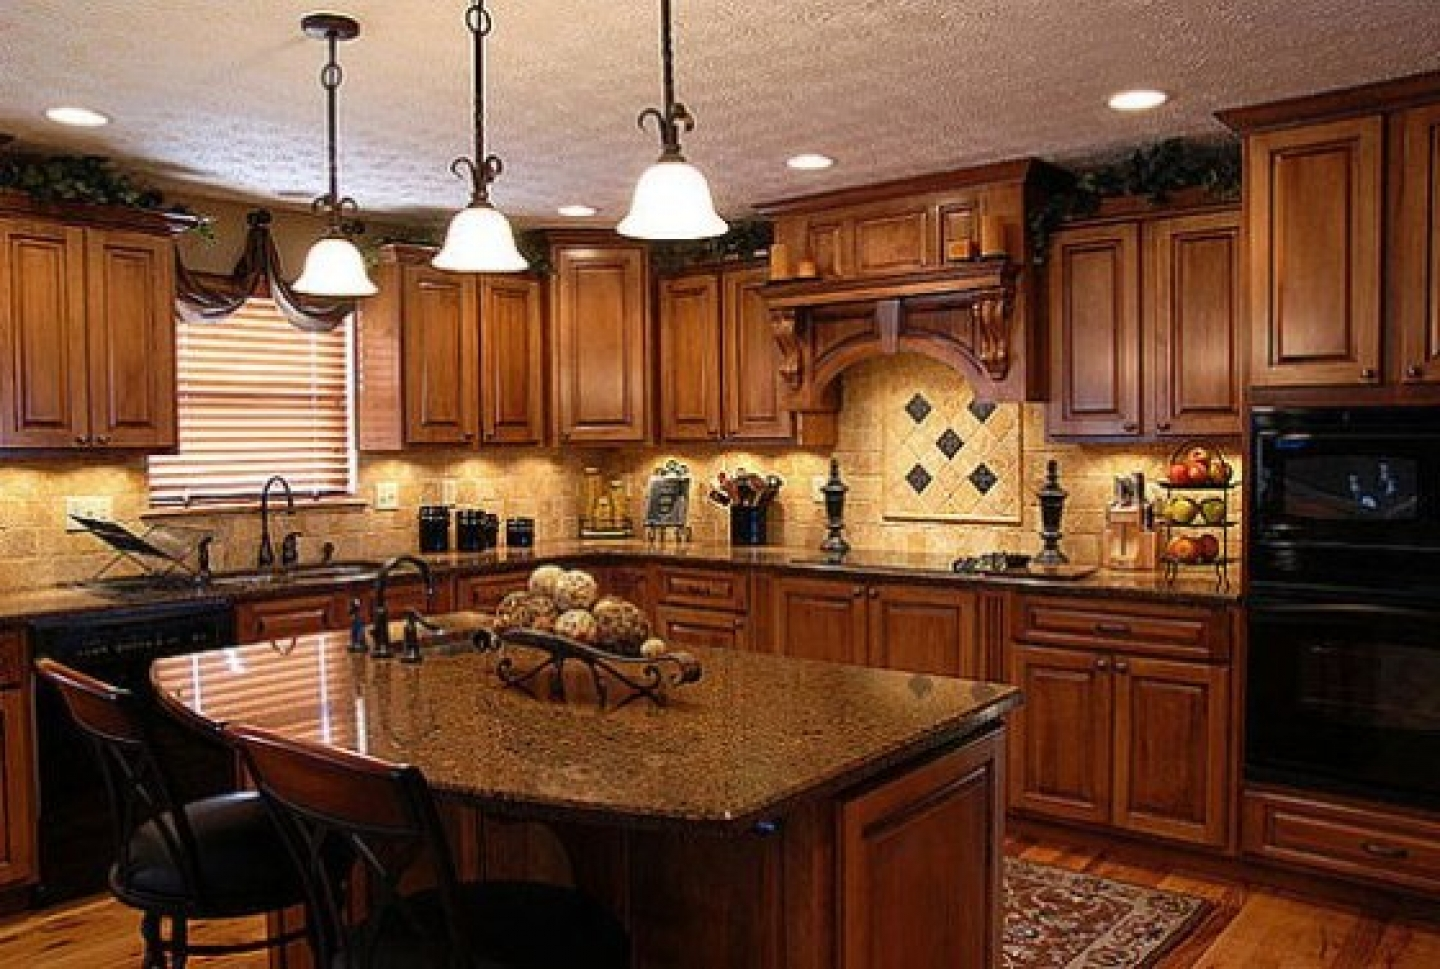 The Lowest Prices For Cabinets In Wilkes Barre